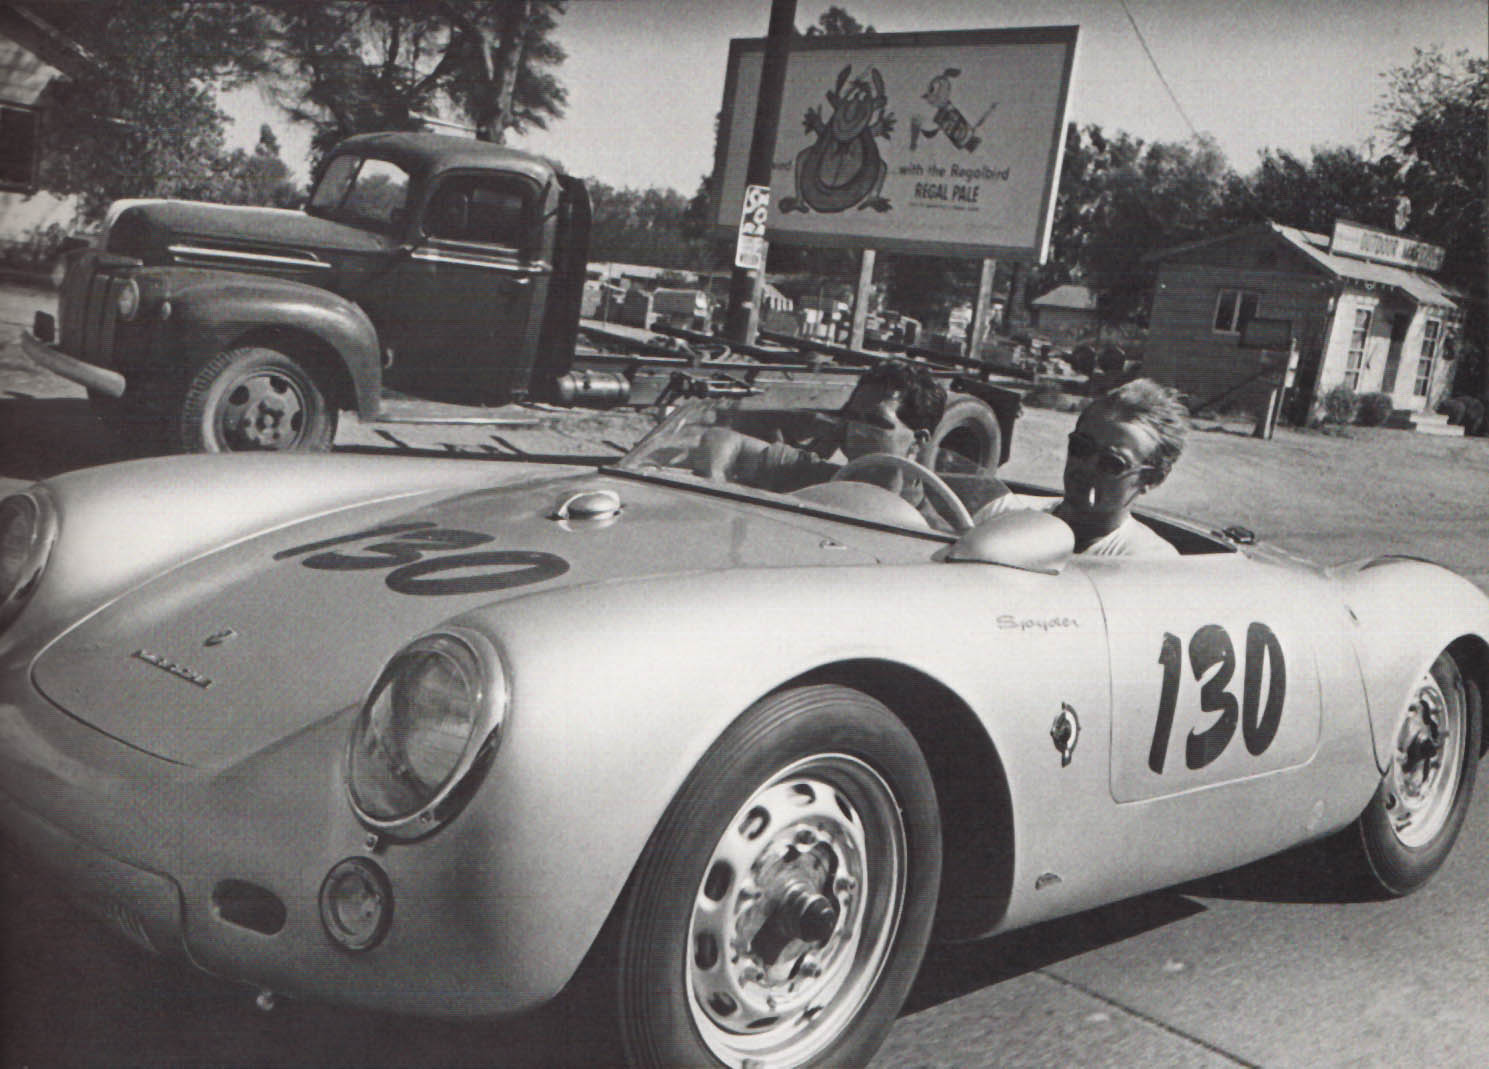 James Dean Porche 1955 550 Spyder